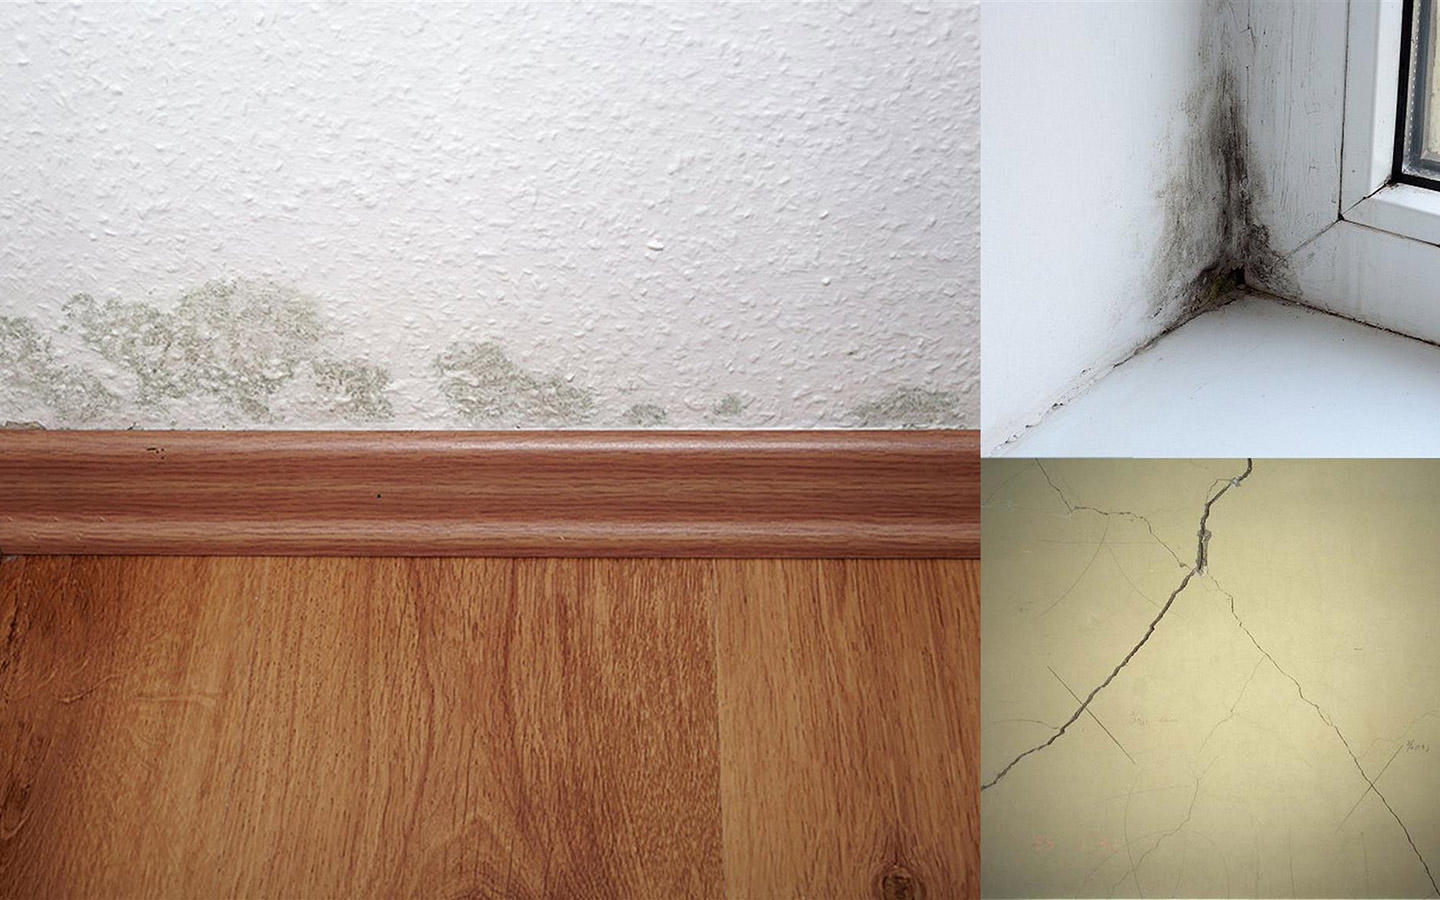 damp, crack and mould in the wall